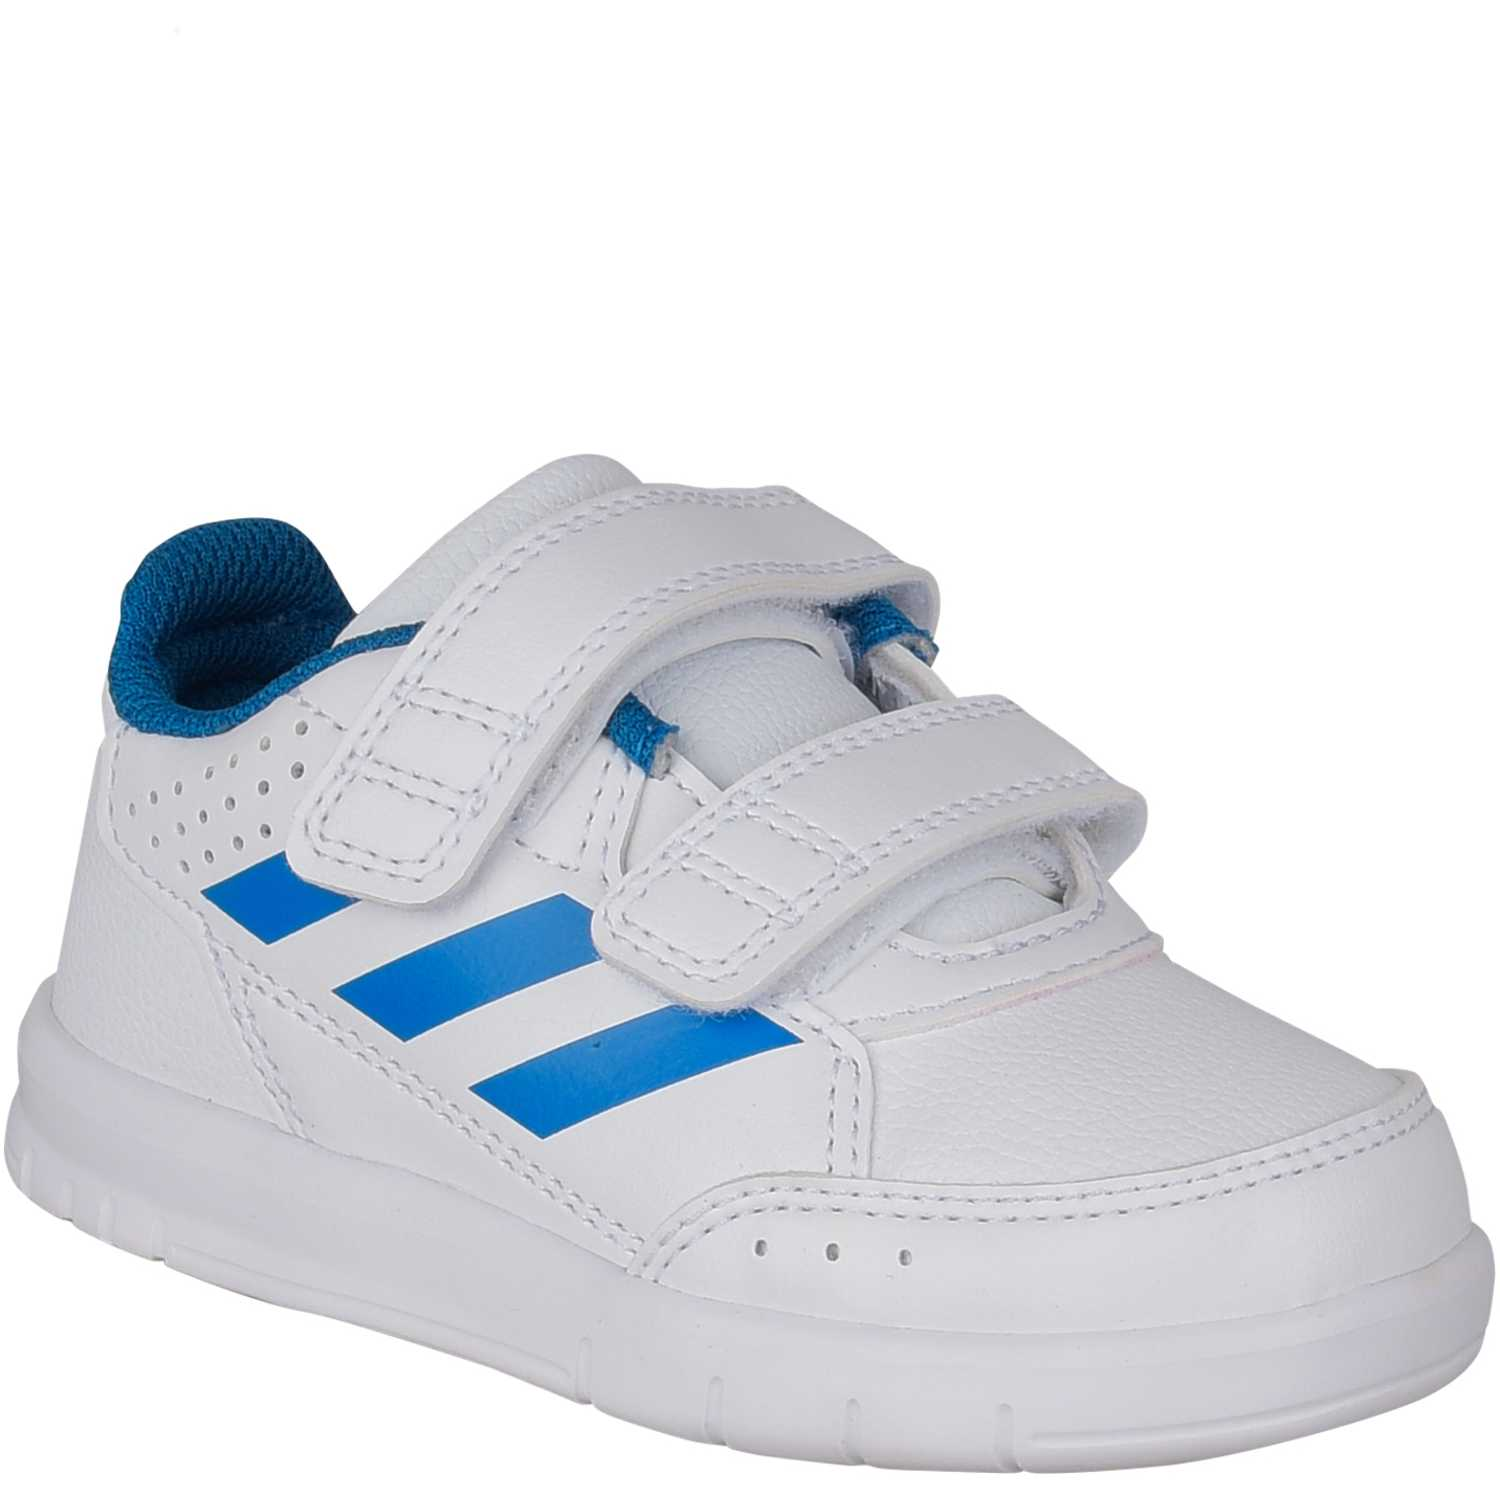 the latest 0354e 4922c Zapatilla de Niño Adidas Blanco  azul altasport cf i